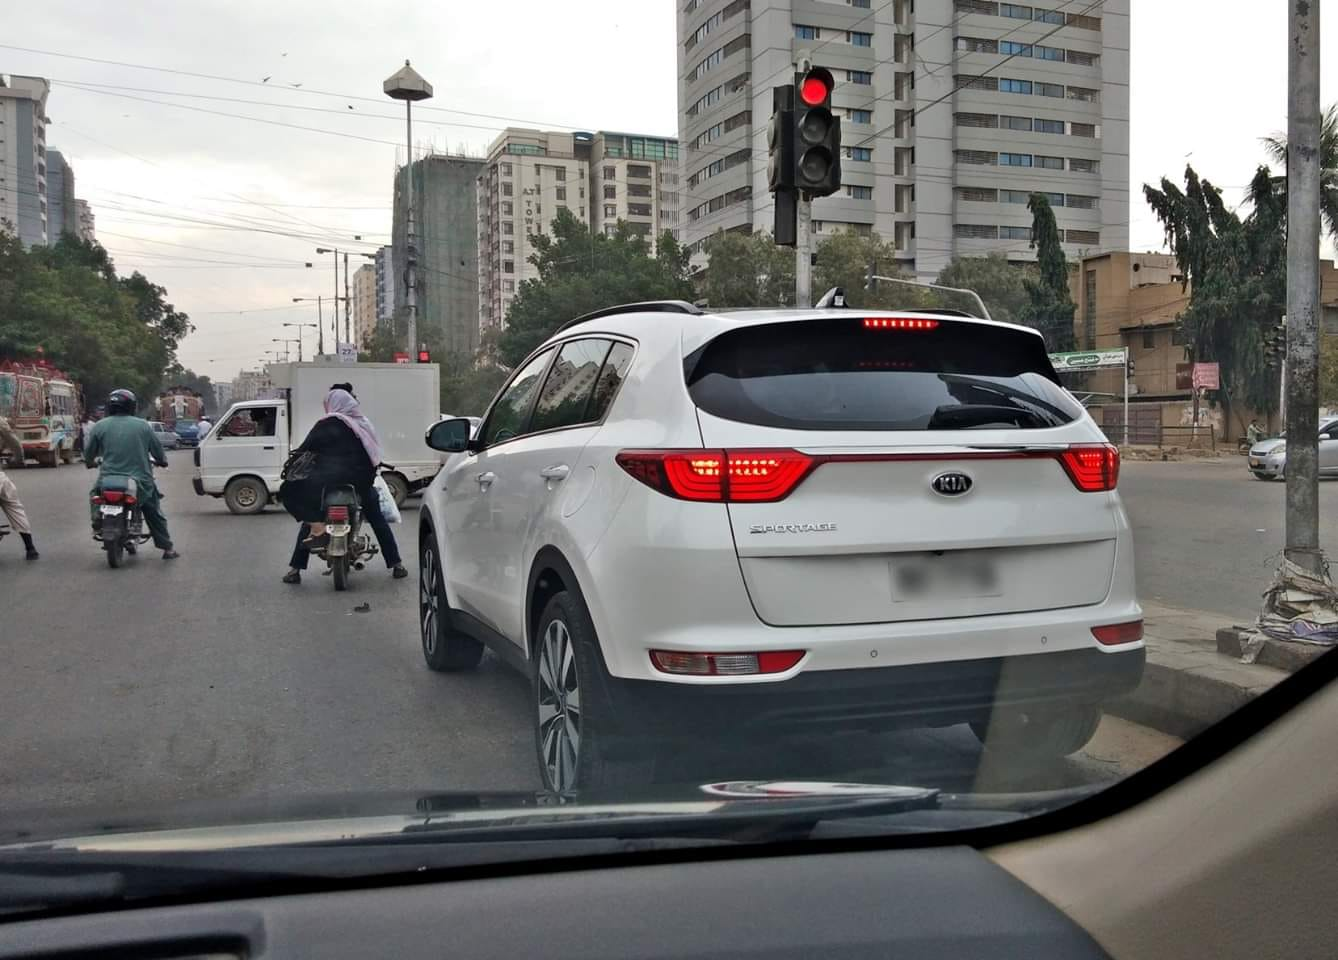 Expensive Sedans in Trouble 1